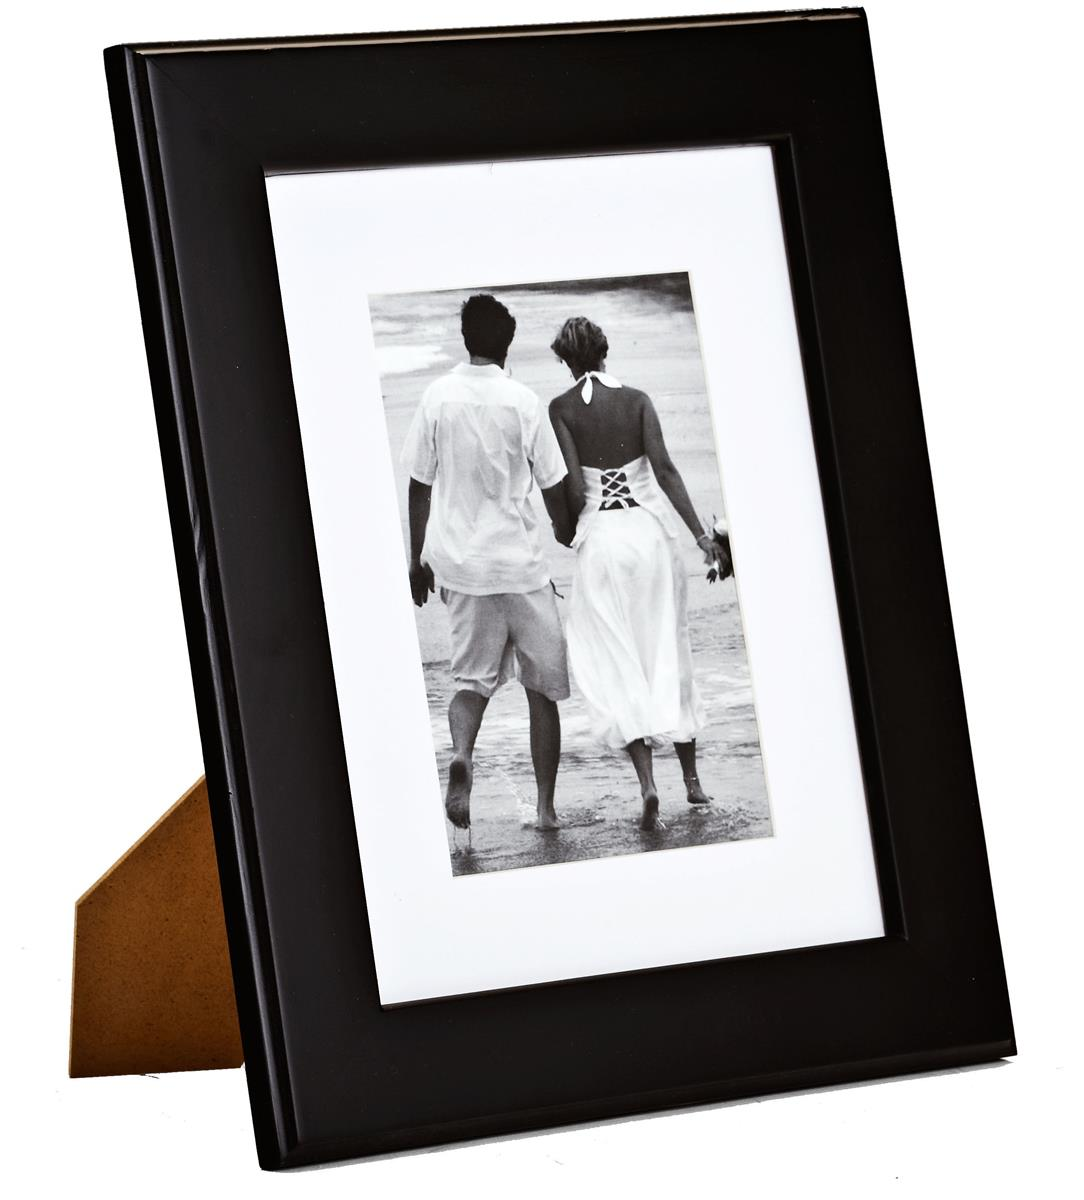 matting frame picture baskan coloring gallery and matted co mat frames idai with adult pages